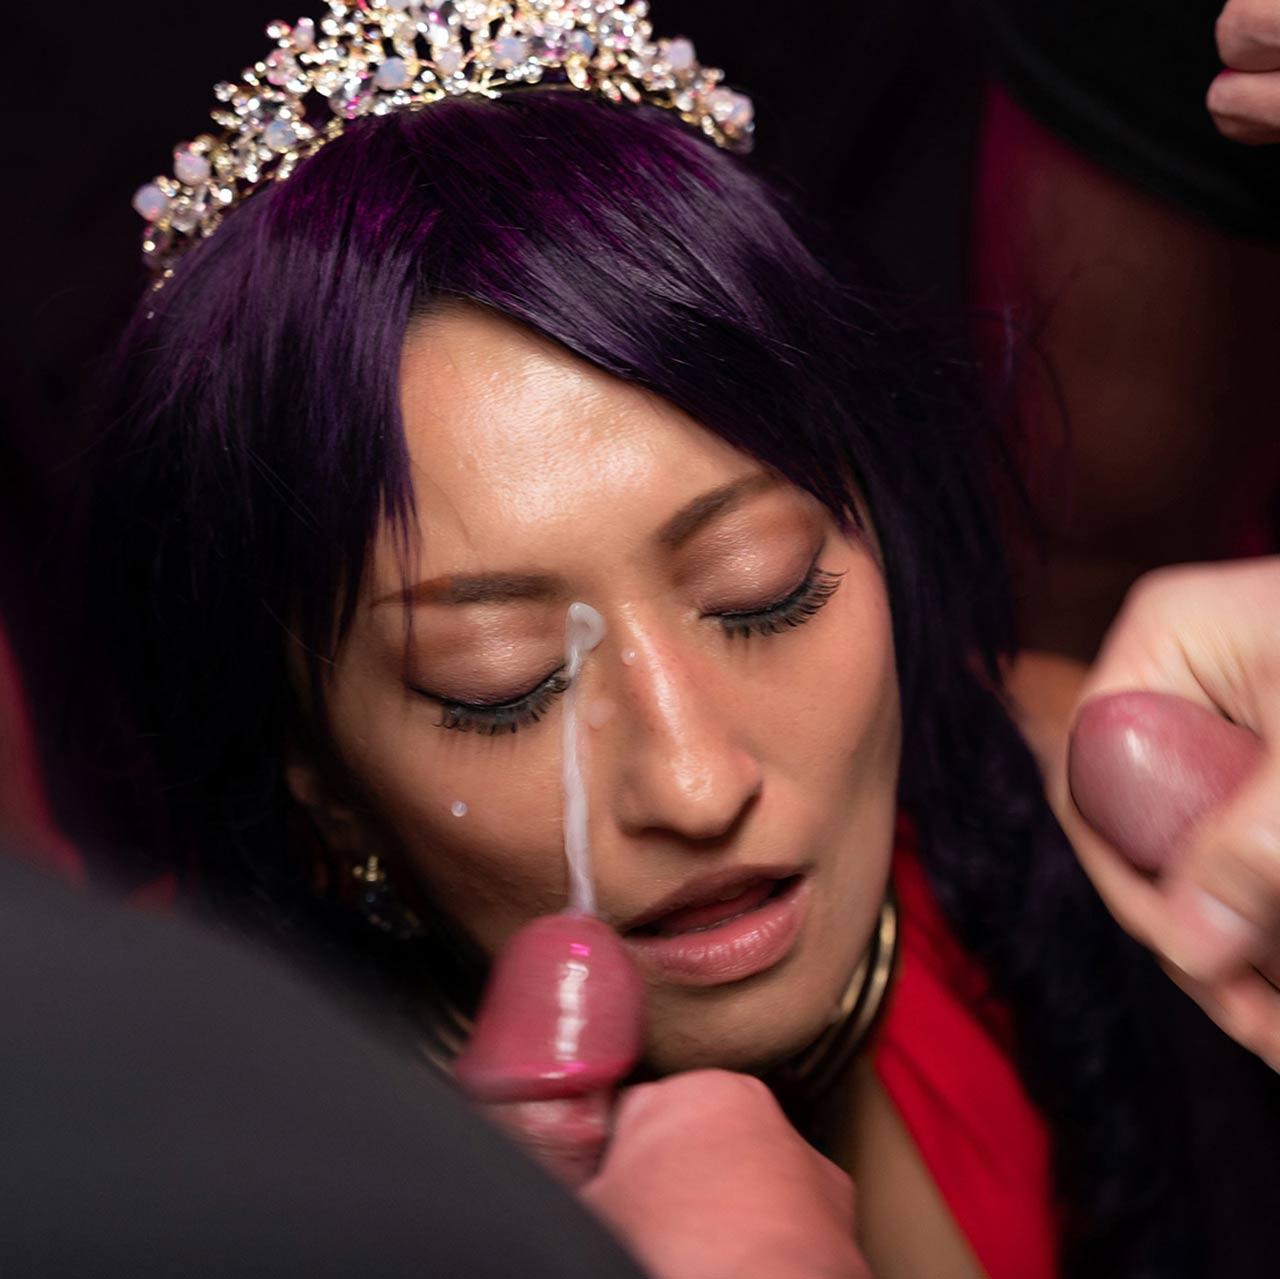 Cospuri Bukkake, Rei Hoshino in a cosplay porn video. Uncensored Facial Fetish with a busty girl getting cum on her face and boobs.